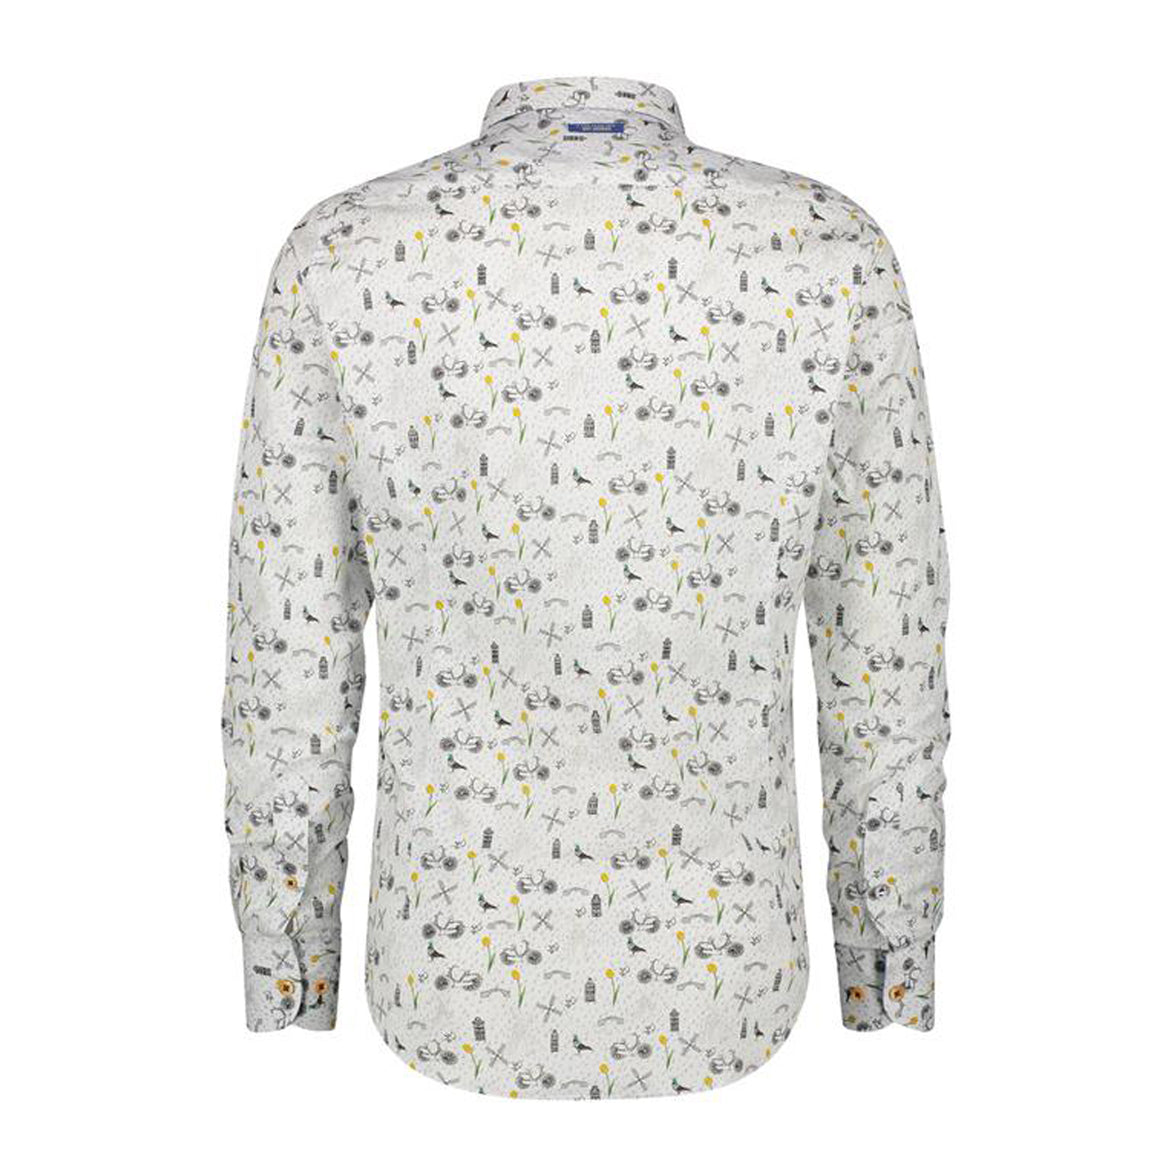 Bikes And Pigeons Shirt for Men in White Multicolour